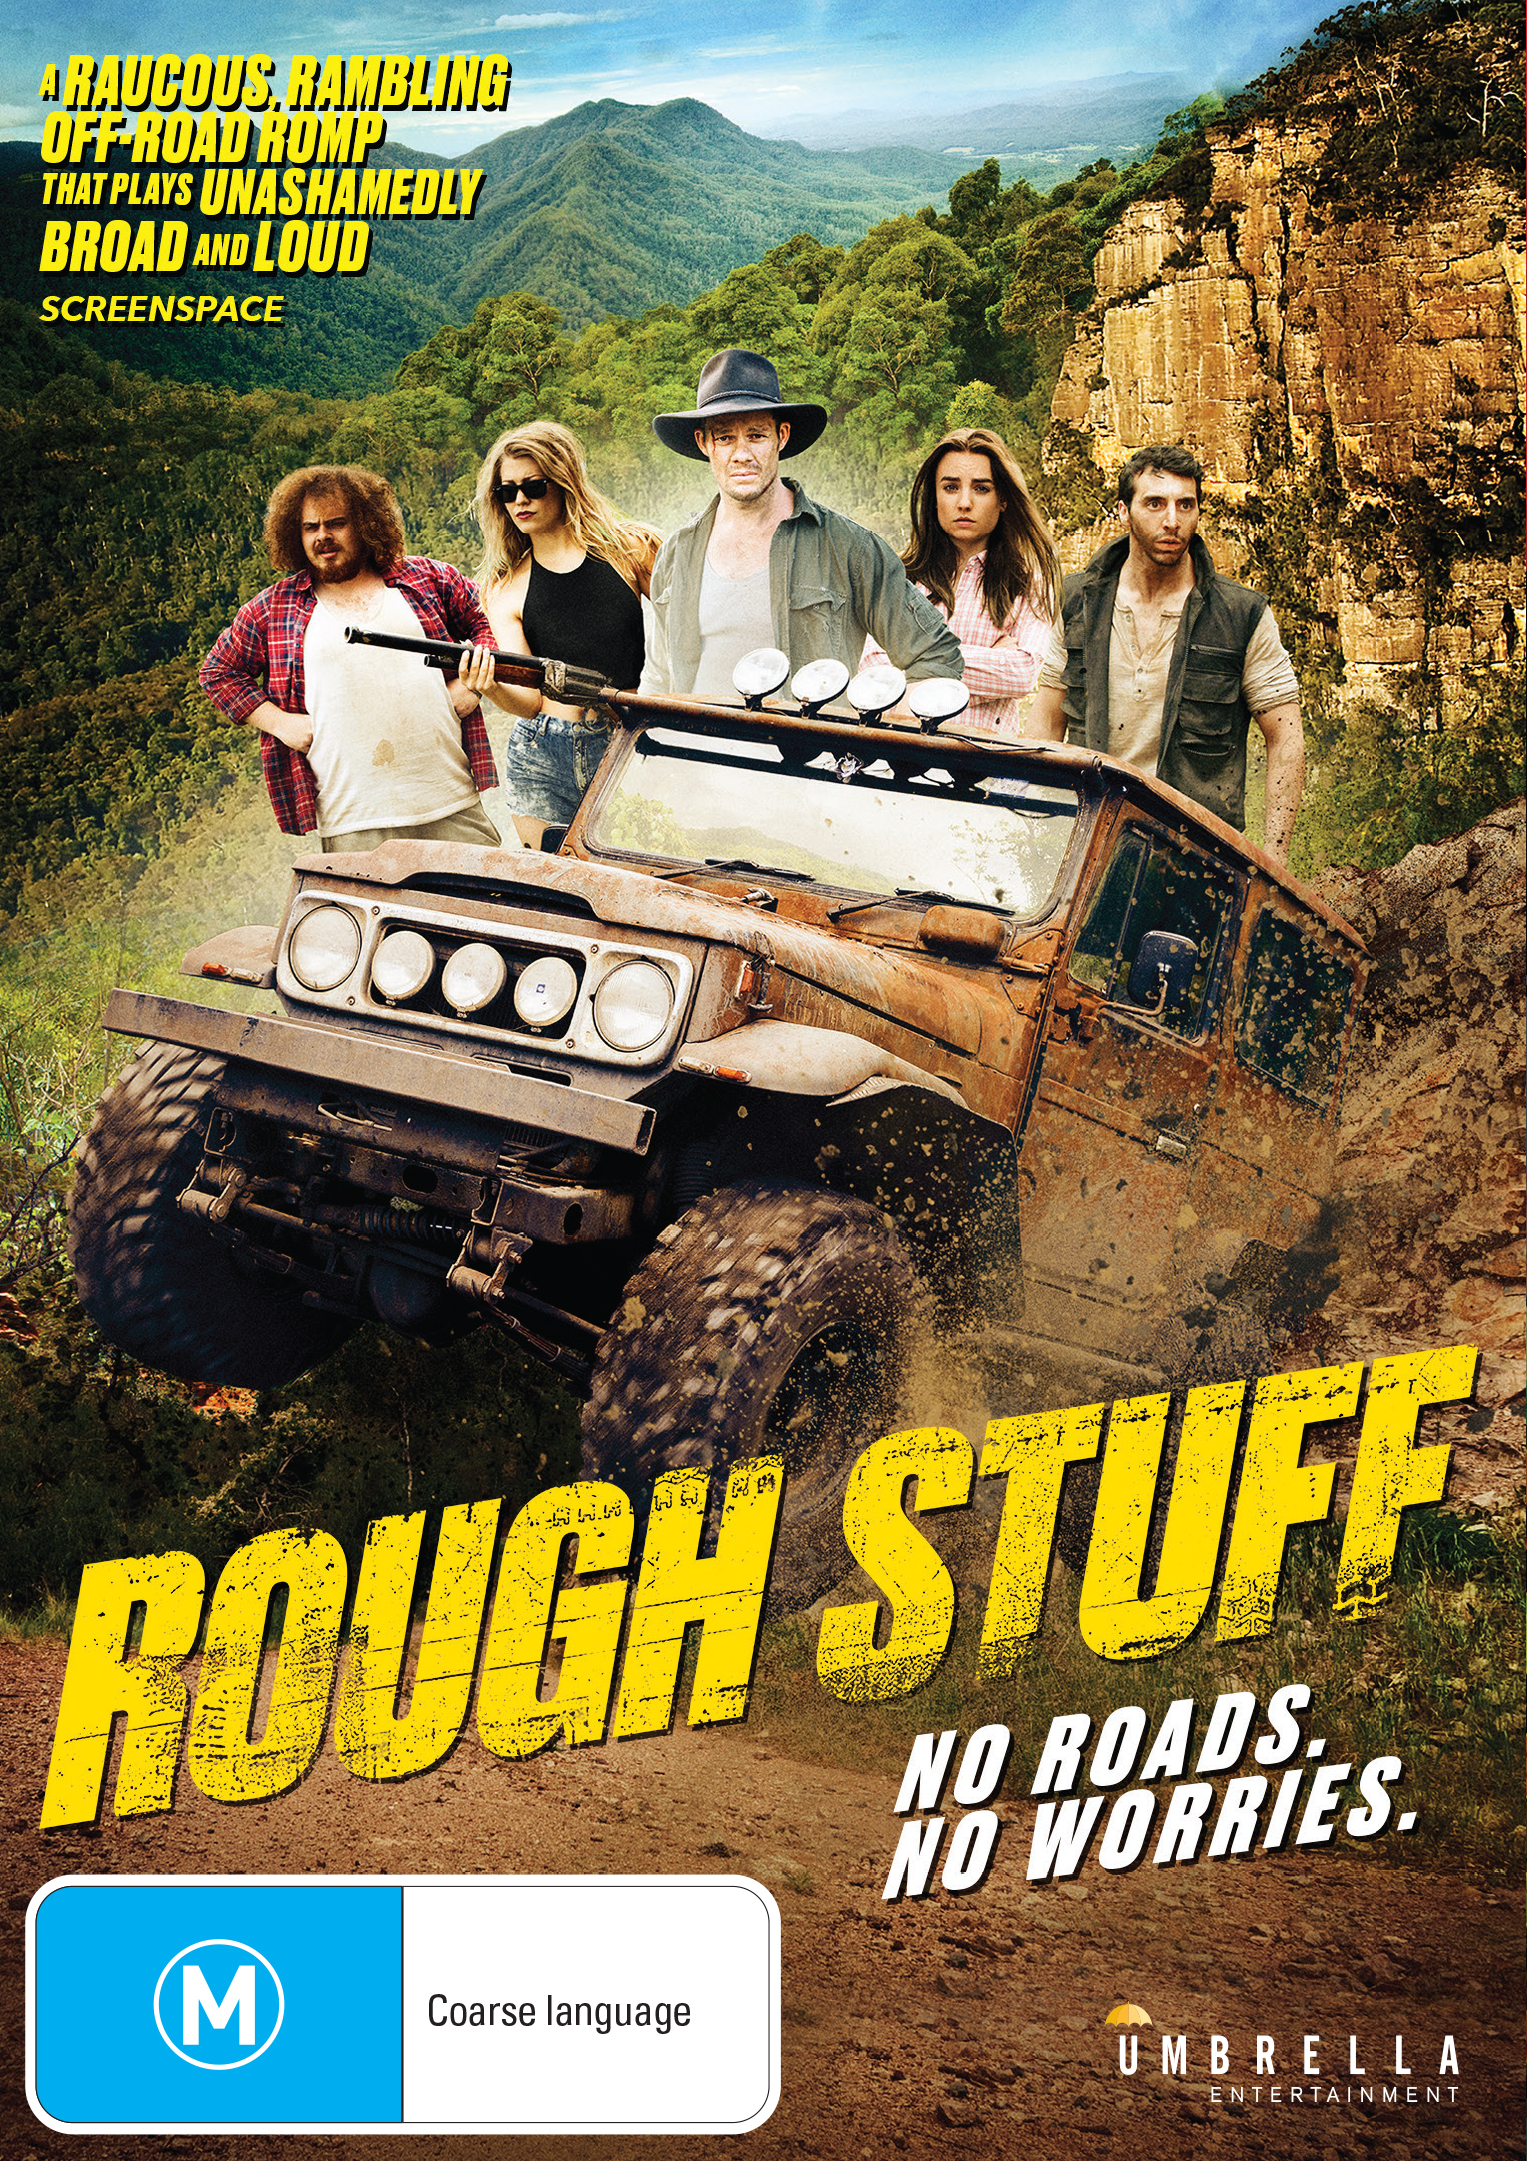 Rough Stuff DVD out now, plus special offer